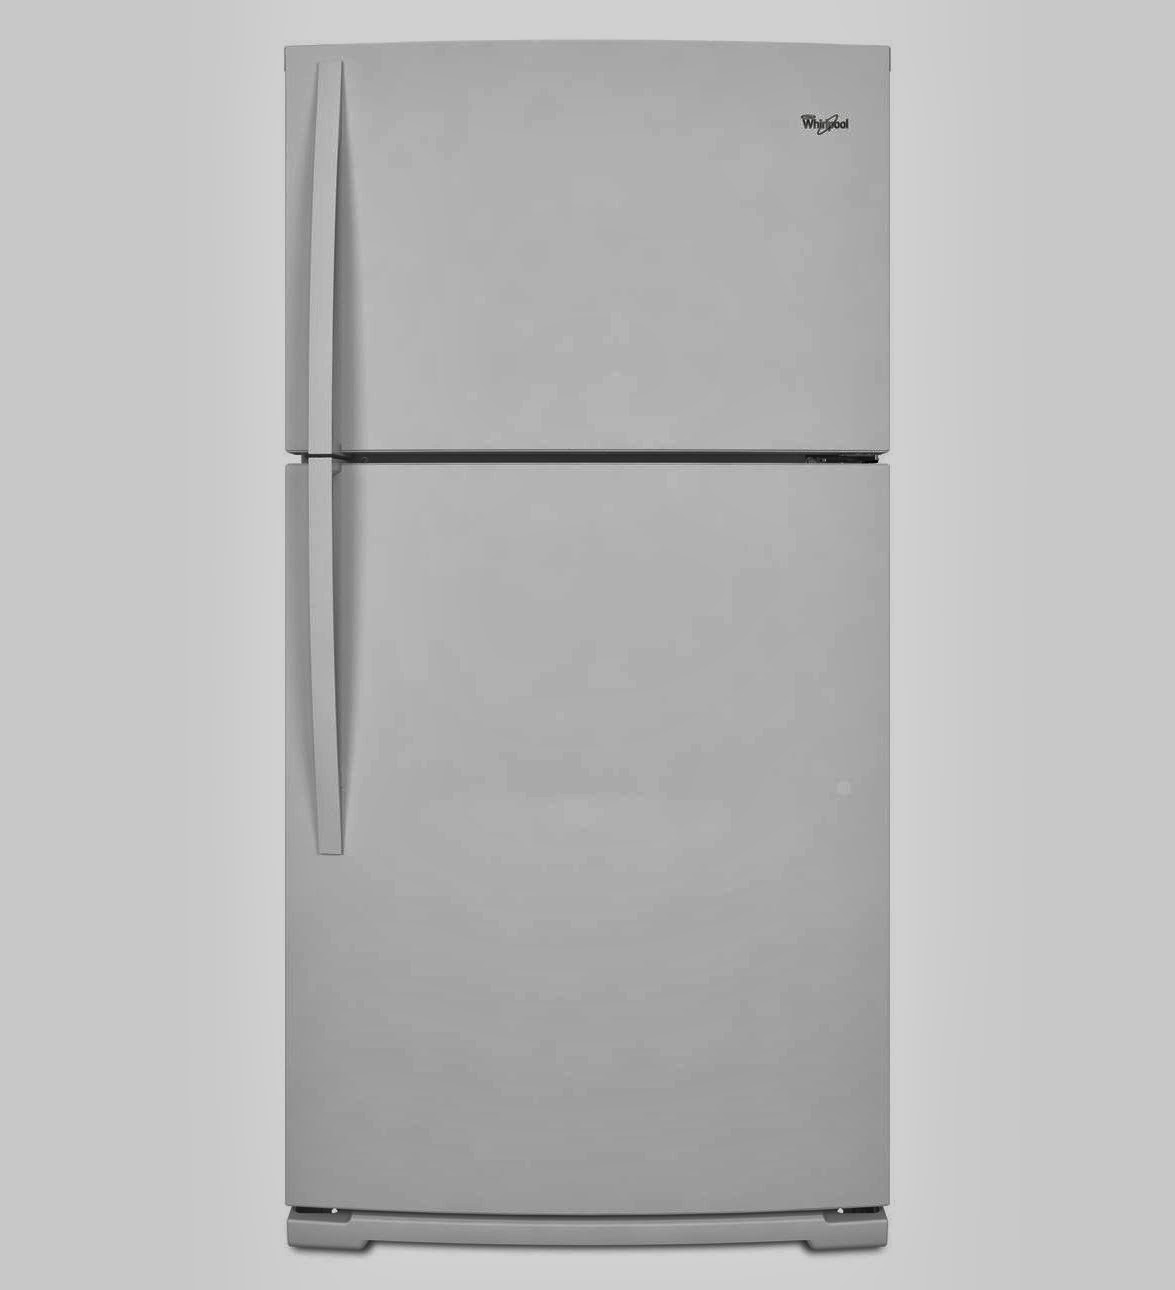 Whirlpool refrigerator brand energy star wrt351sfyw top for 18 cubic foot french door refrigerator